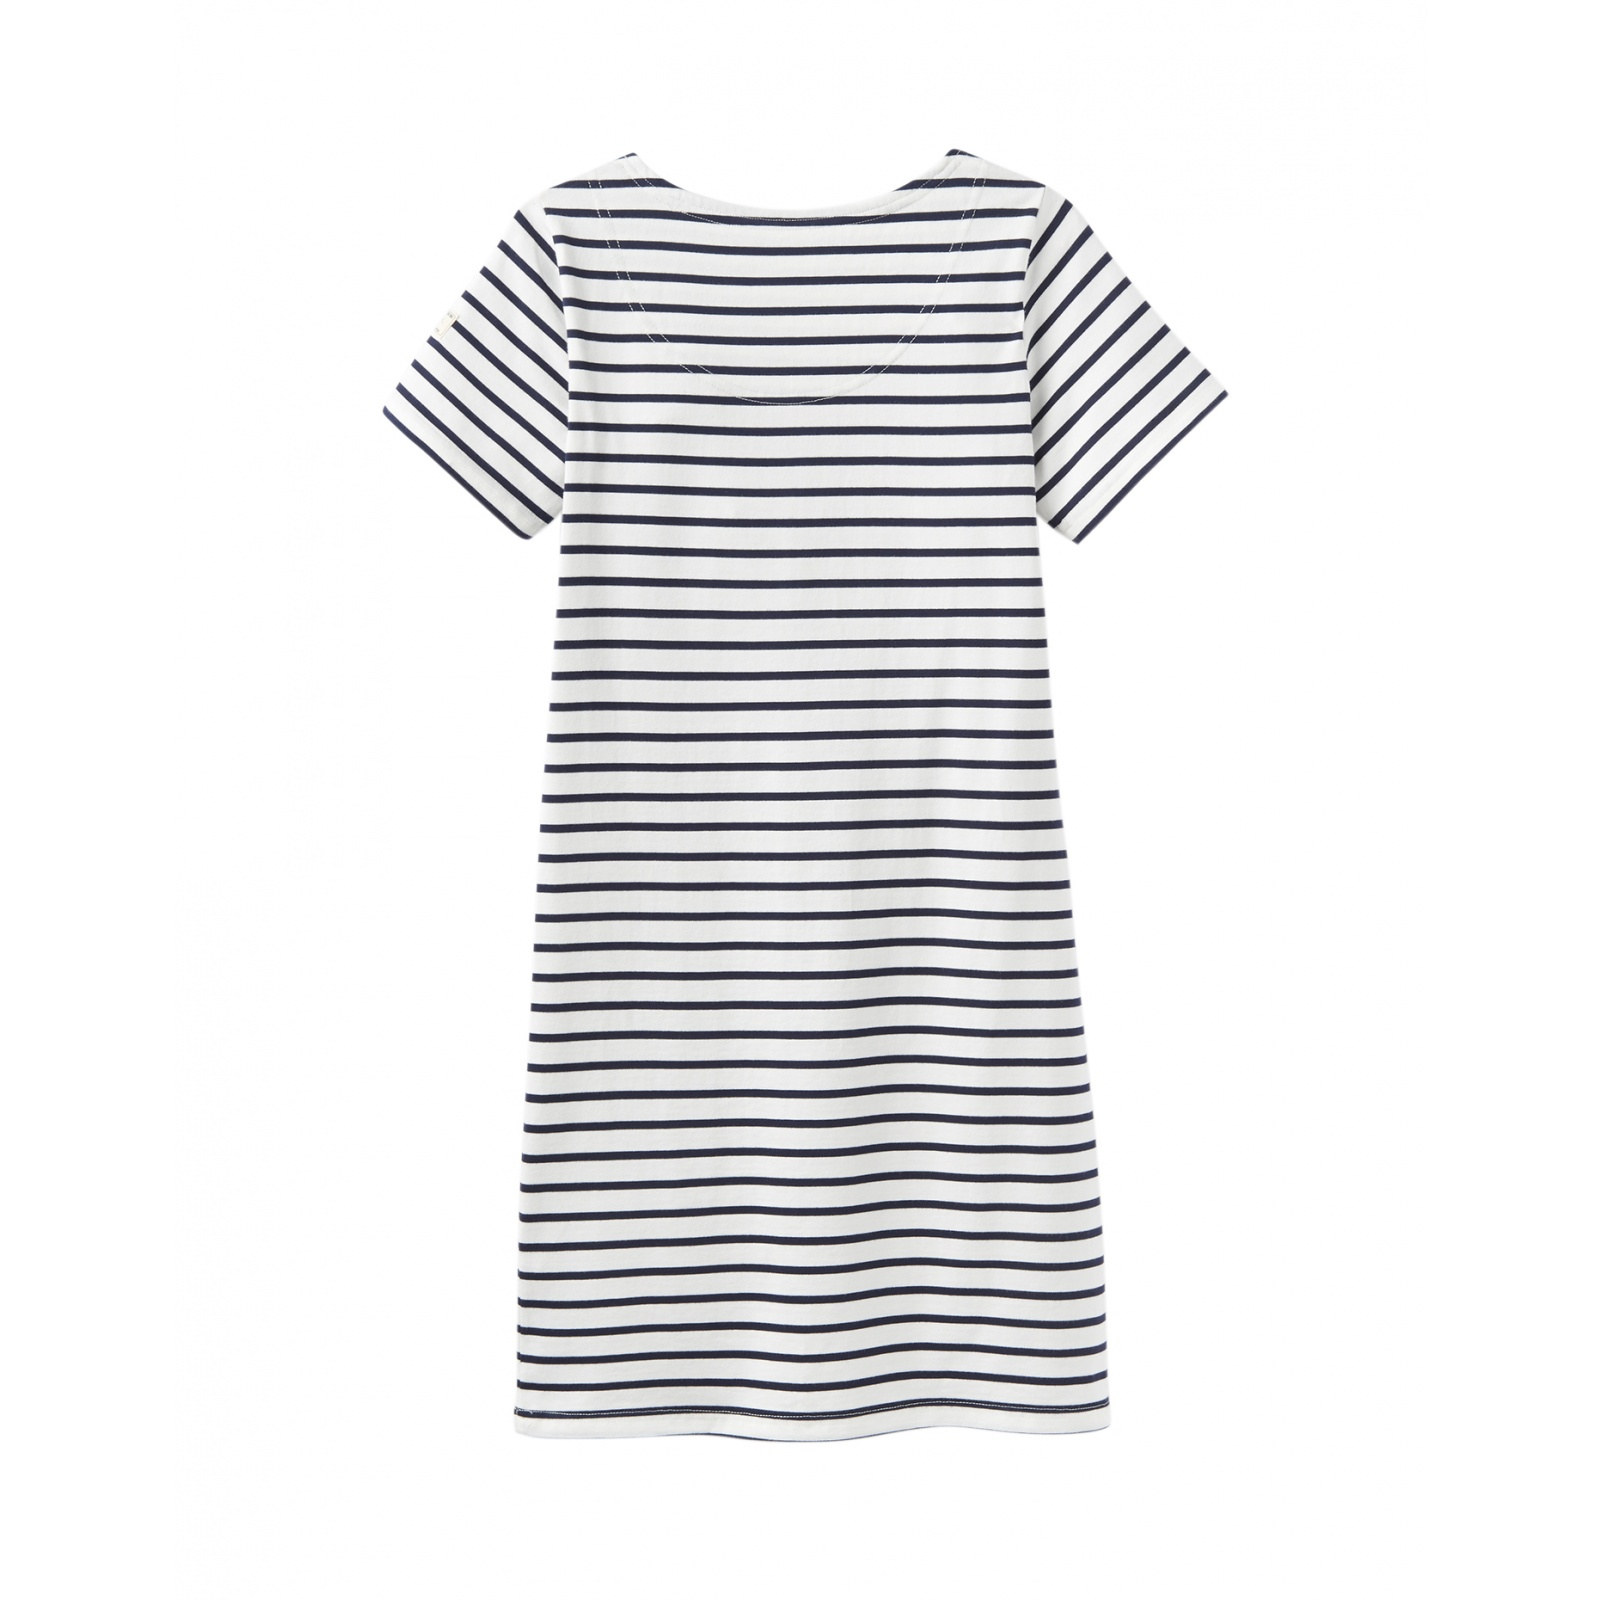 Joules-Riviera-T-Shirt-Dress-with-Short-Sleeves-SS19 miniature 12